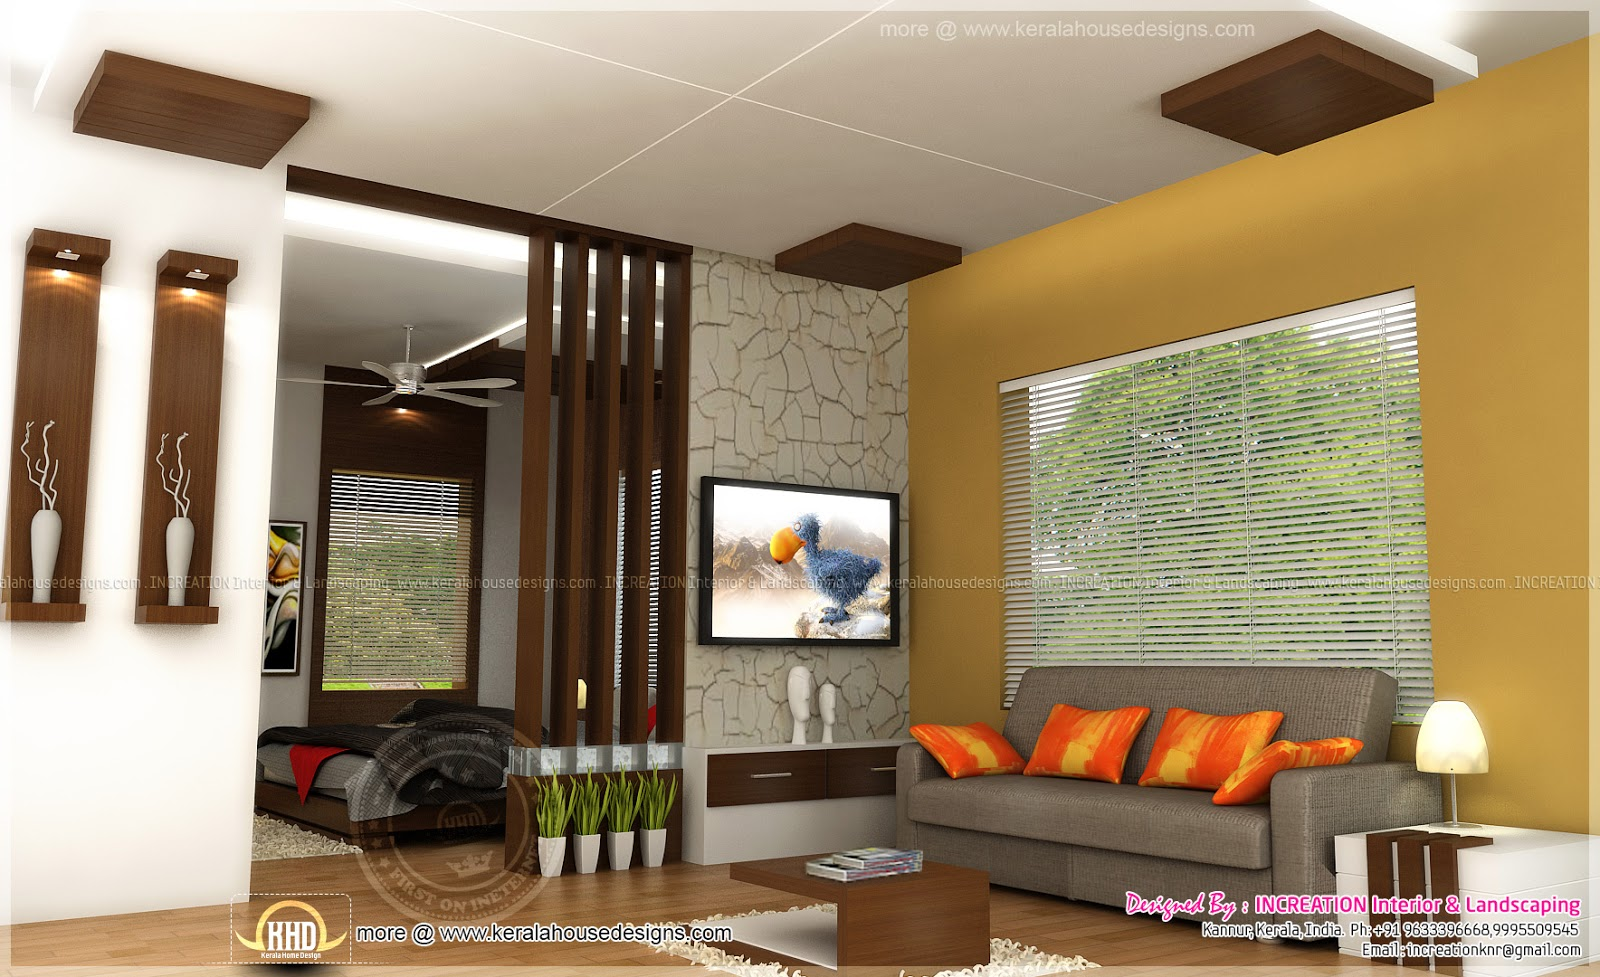 Interior designs from kannur kerala kerala home design for Interior design and interior decoration